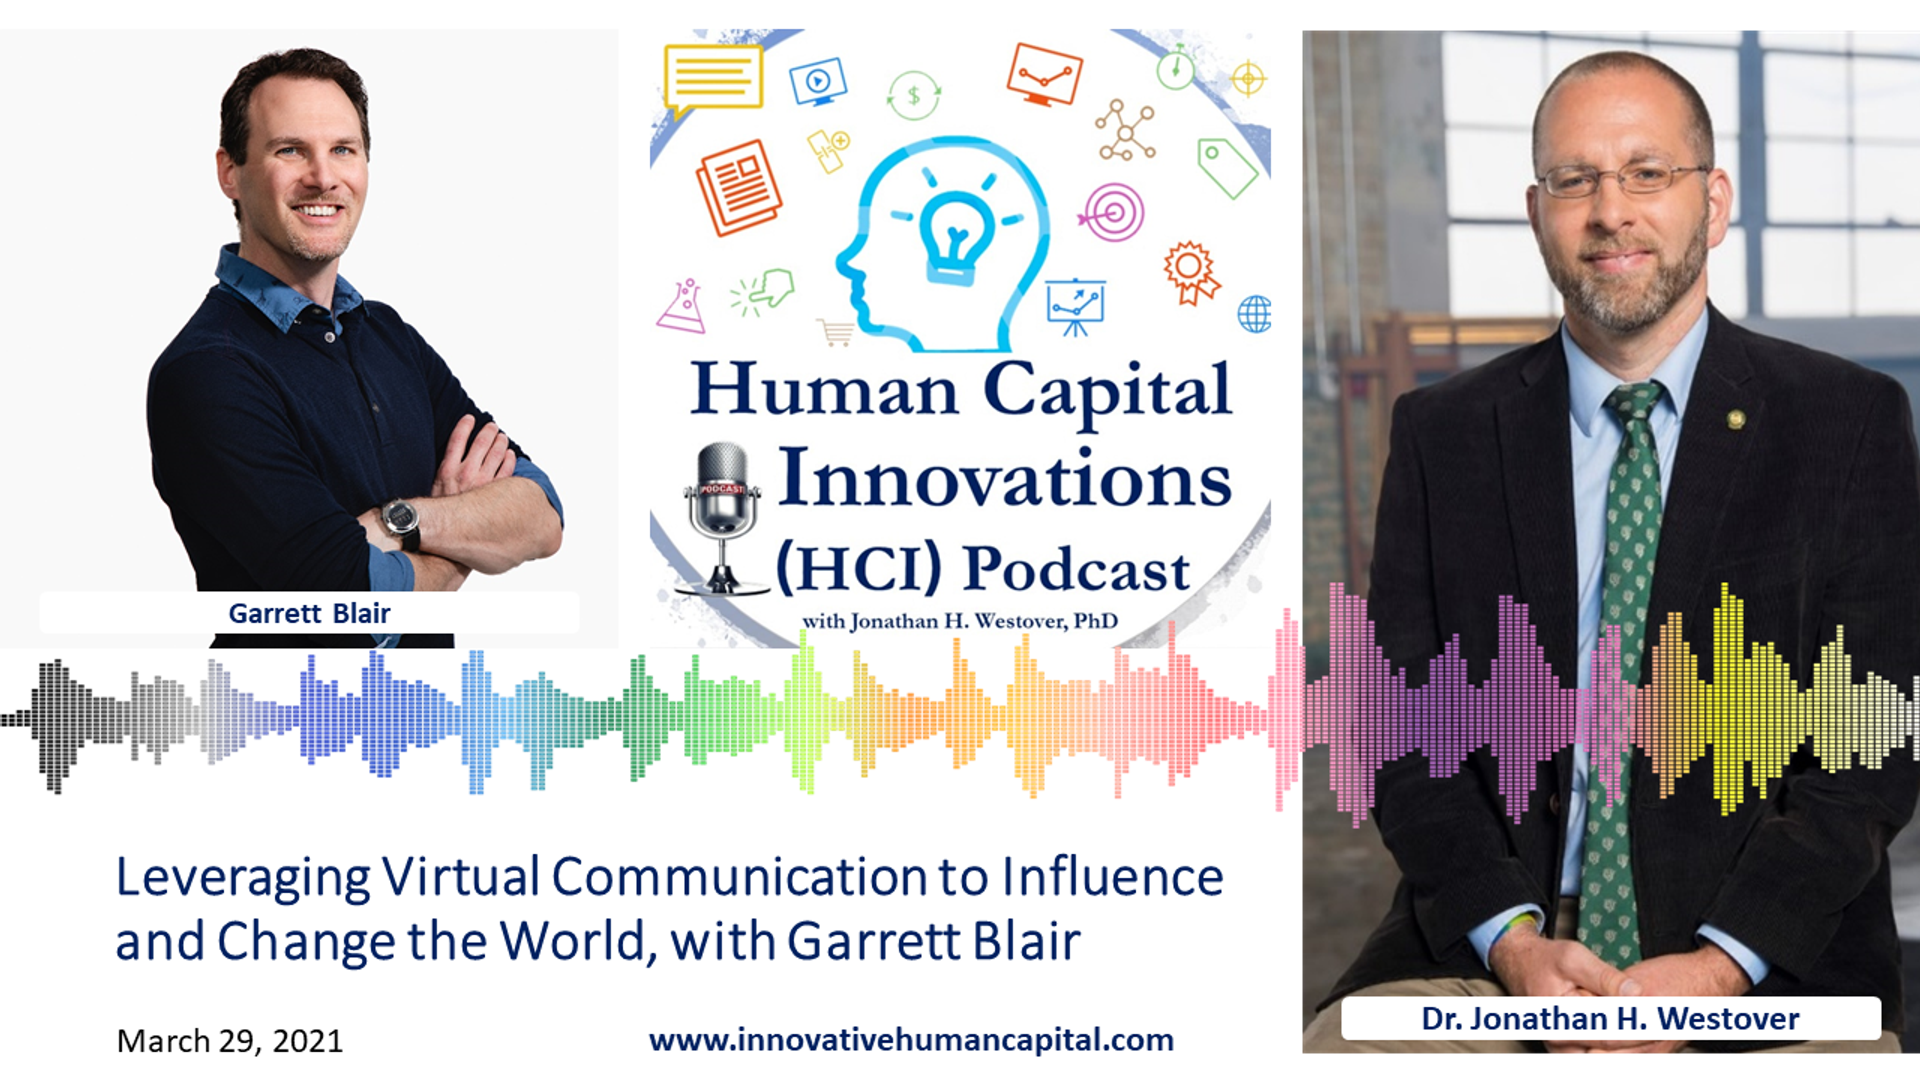 Leveraging Virtual Communication to Influence and Change the World